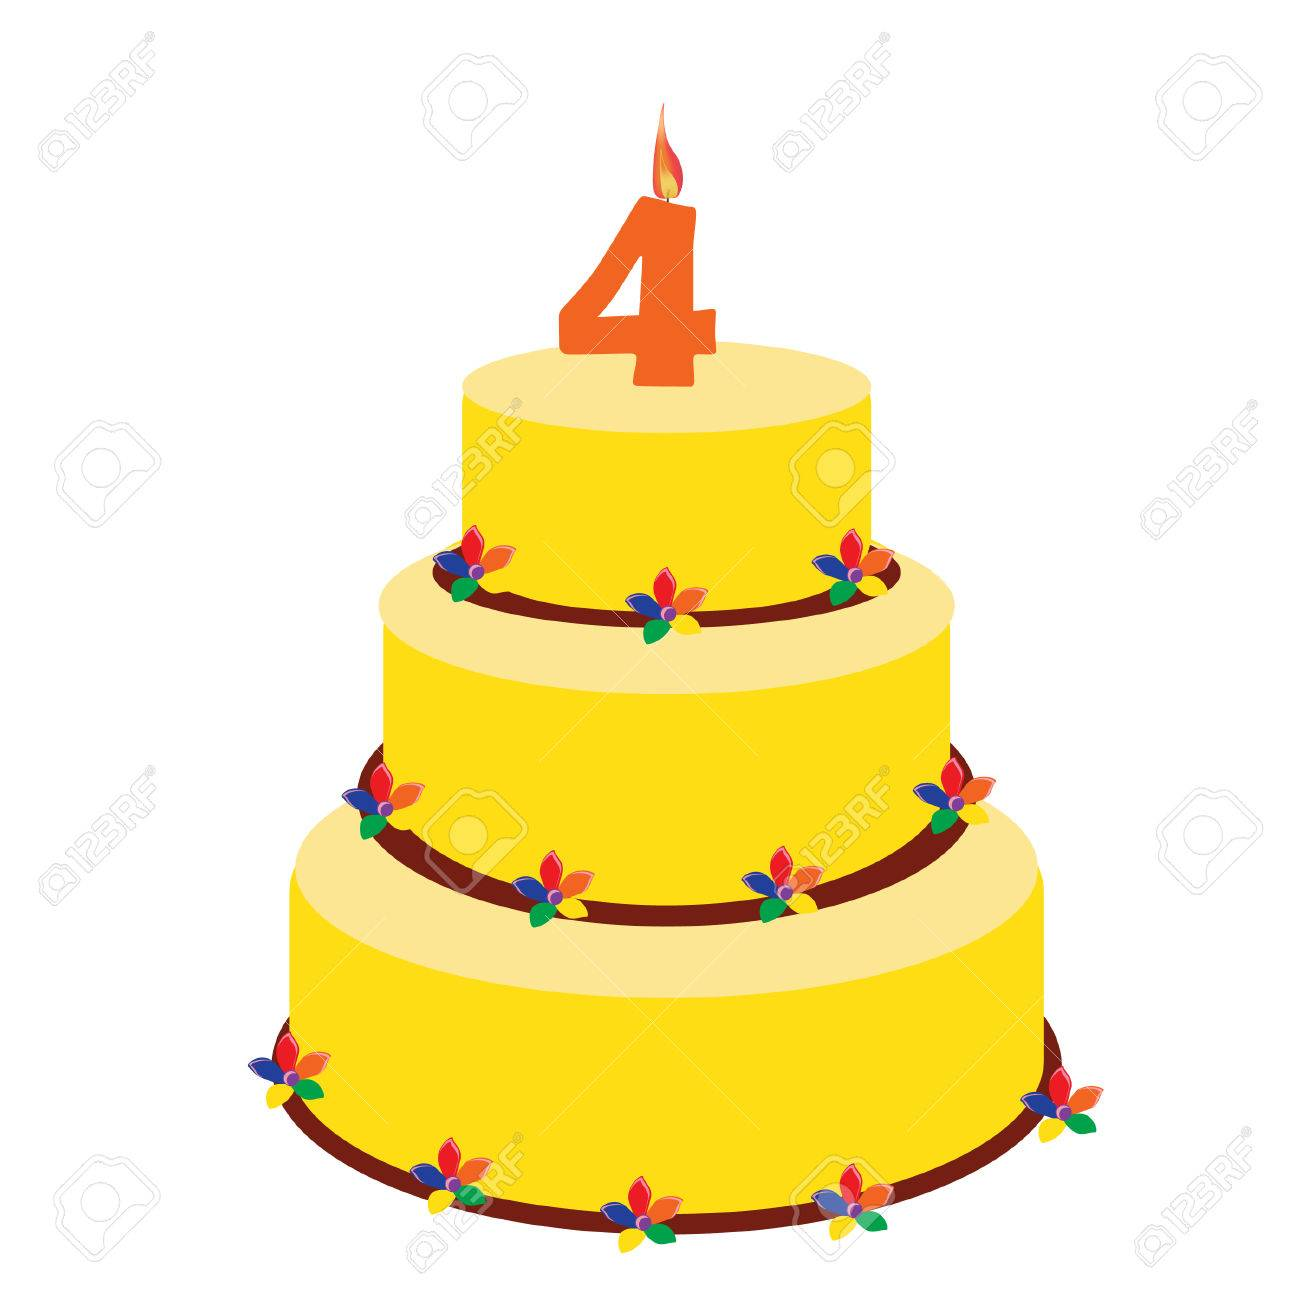 Sensational Birthday Cake With Birthday Candle Number Four On Top Fourth Funny Birthday Cards Online Sheoxdamsfinfo